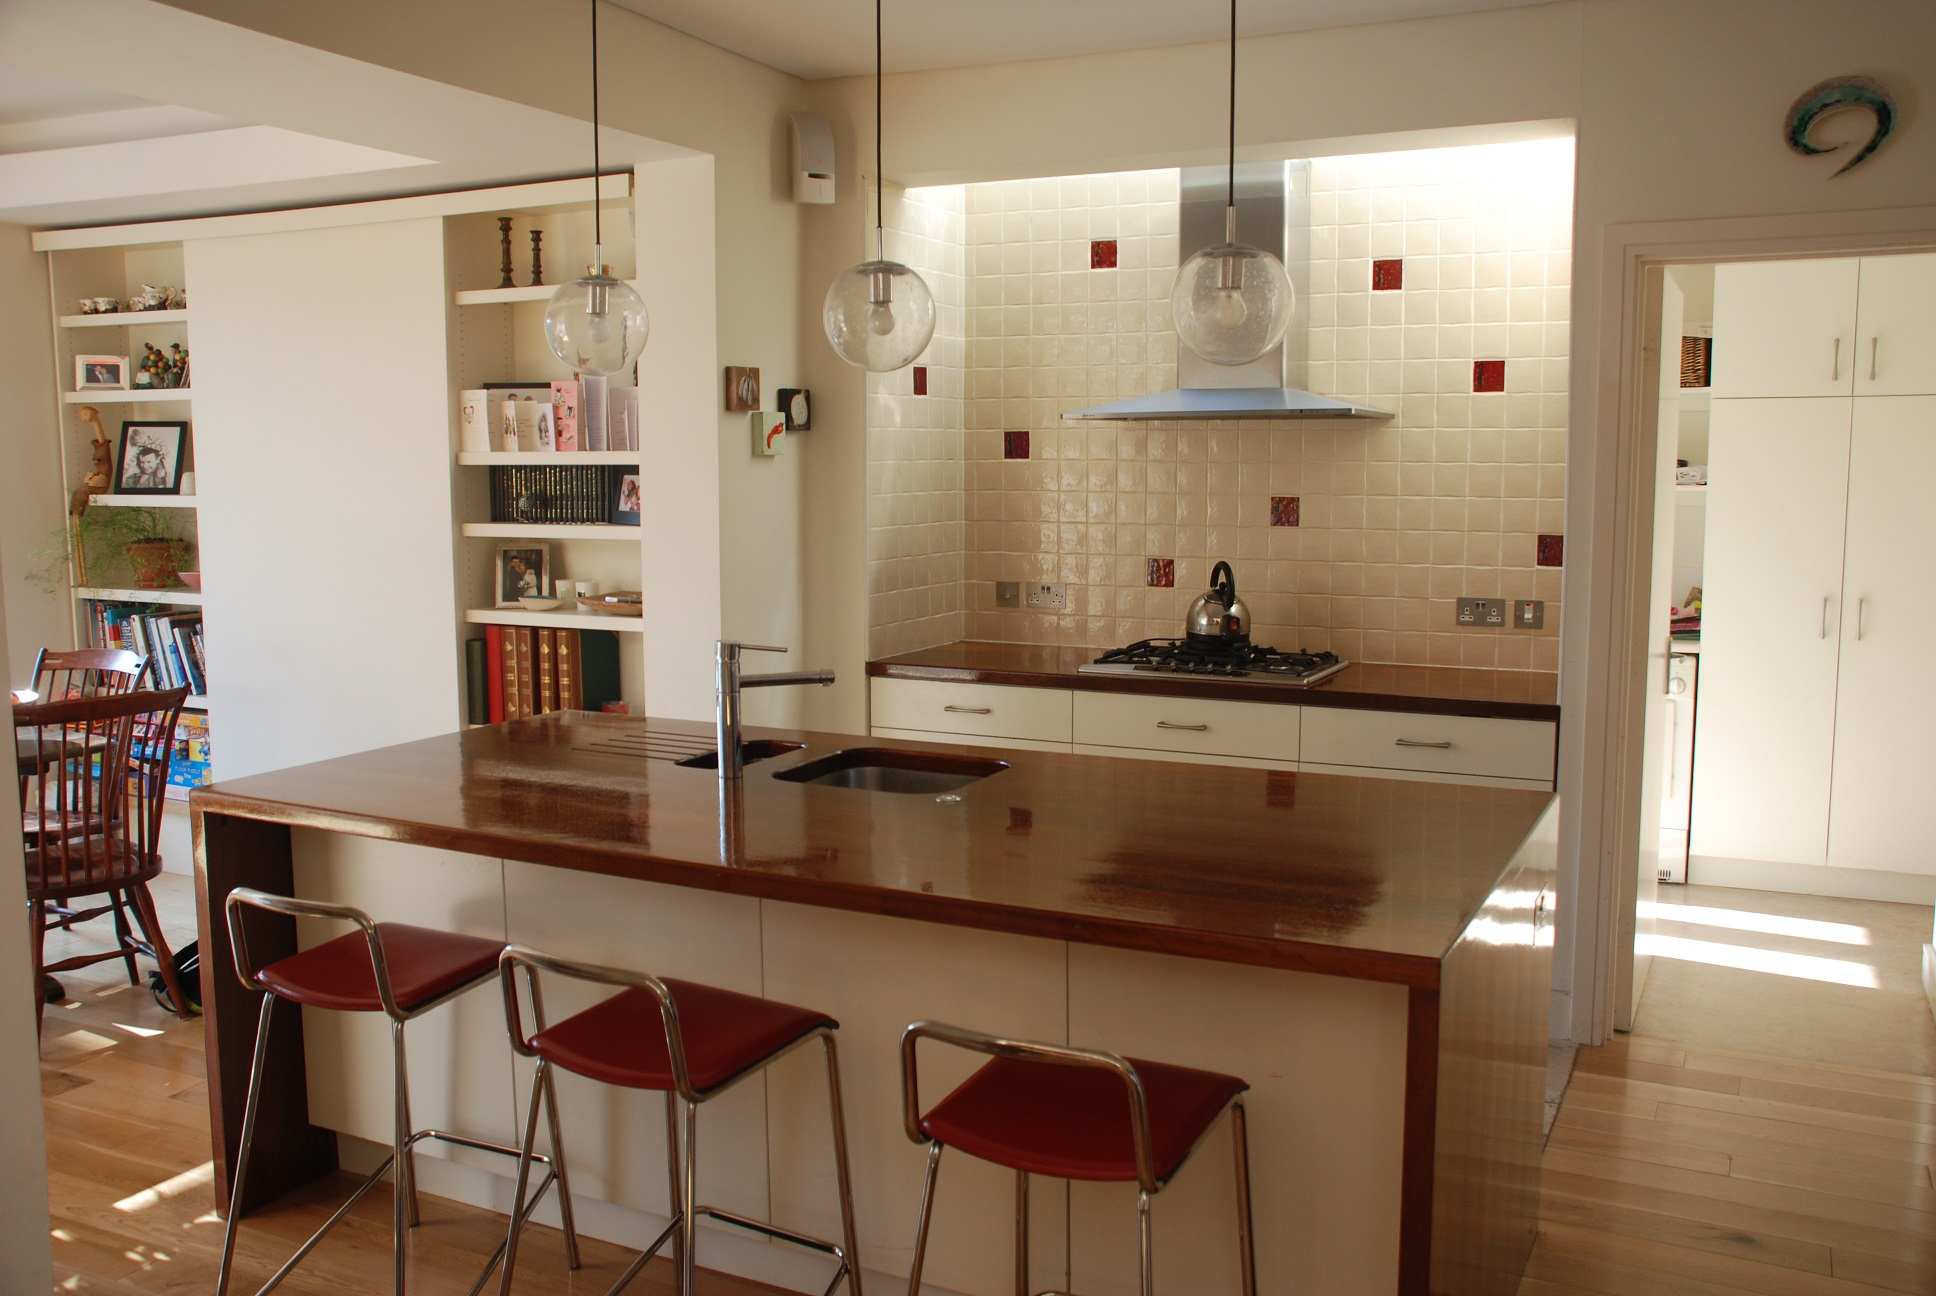 View and s For Alainn Kitchen Concepts Adrian Versey